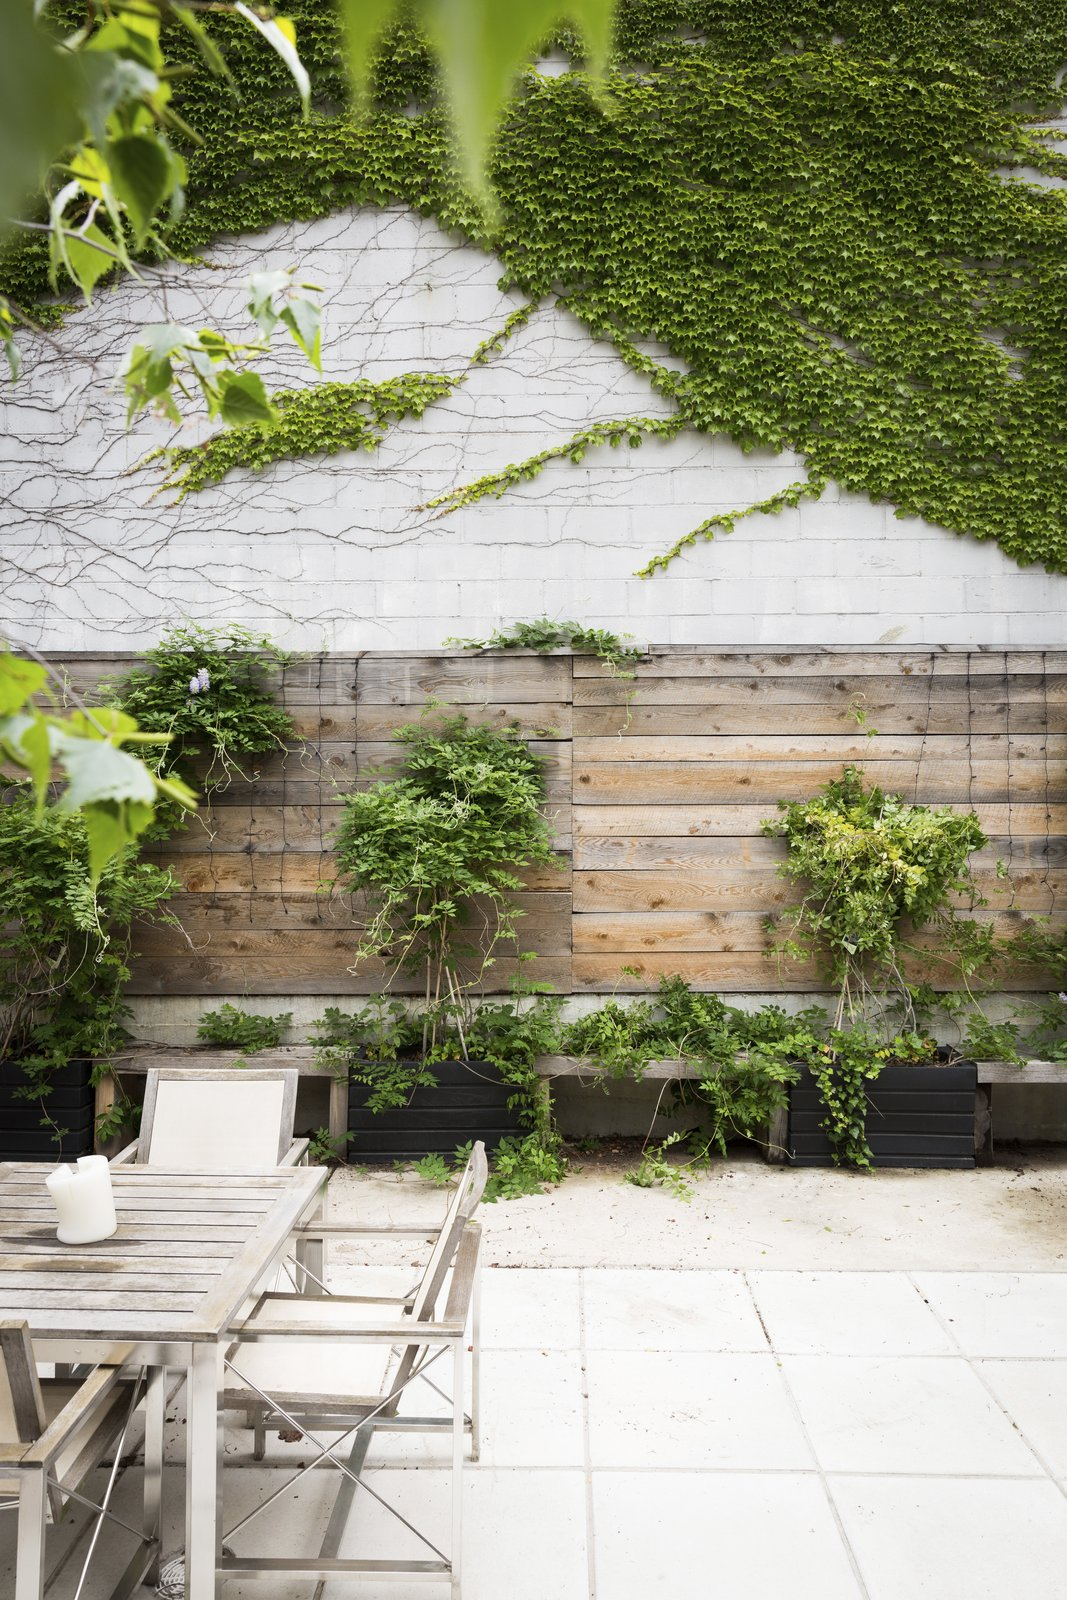 Outdoor, Gardens, Wood Fences, Wall, Concrete Fences, Wall, Concrete Patio, Porch, Deck, and Garden The downstairs garden space offers another outdoor escape.  Photos from In Brooklyn, an 1890s Townhouse Is Reborn With Tons of Light and a Crisp Black Facade